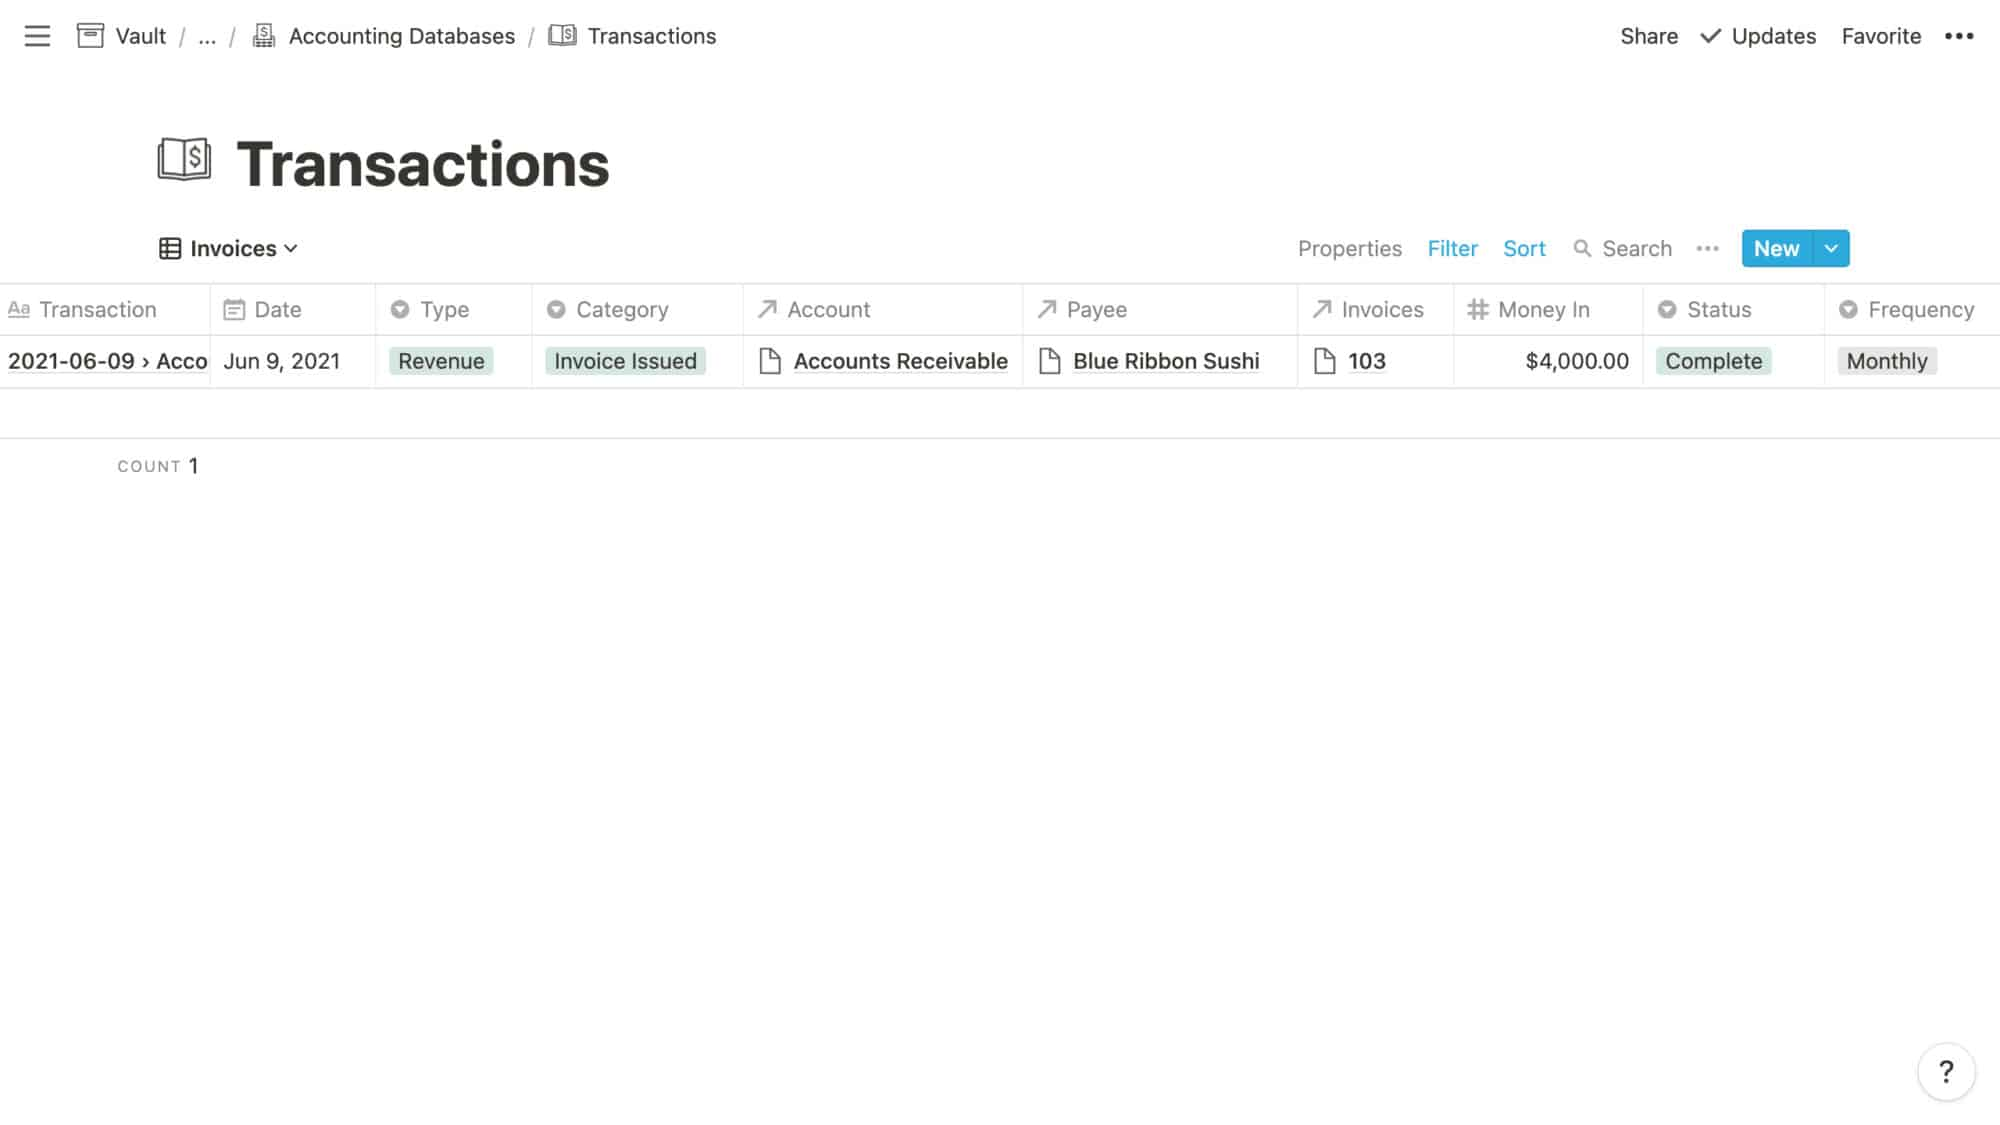 Transactions Example: Invoice Issued